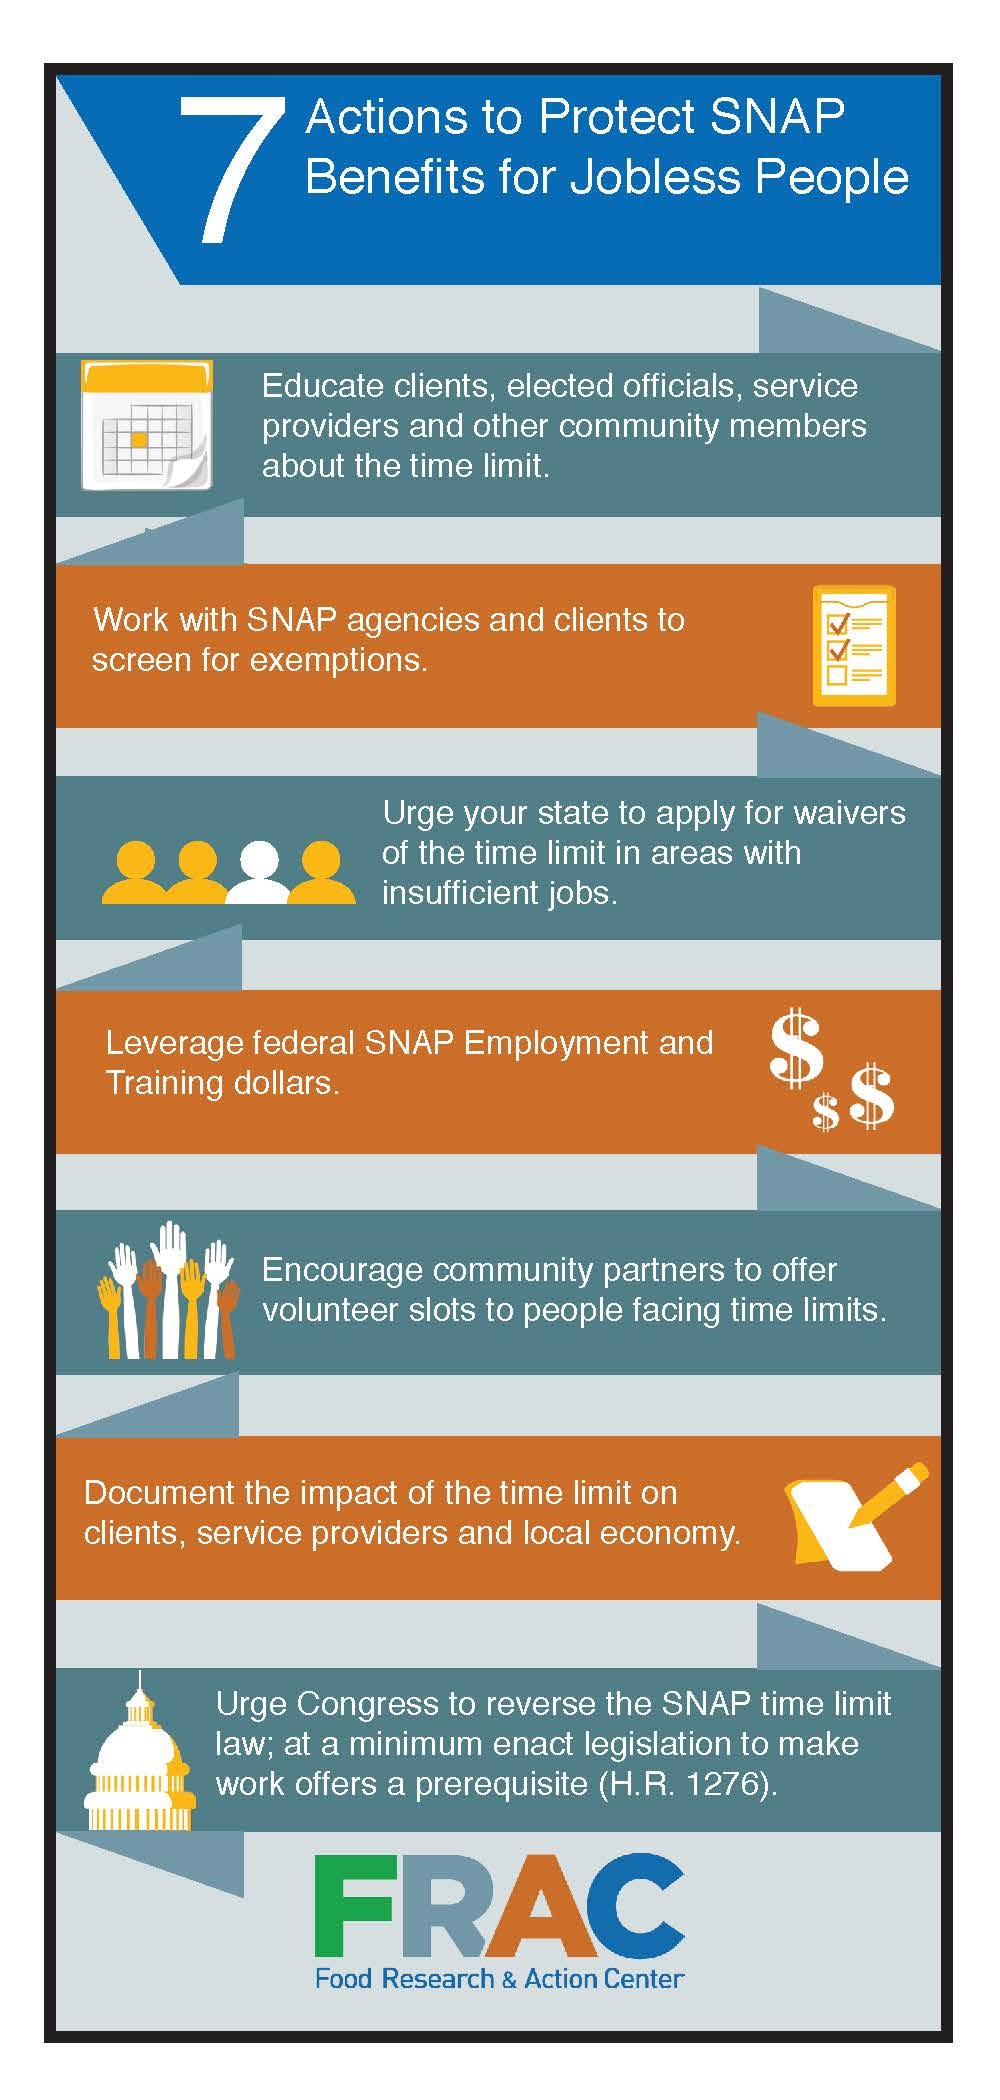 7 Actions To Protect SNAP Benefits For Jobless People